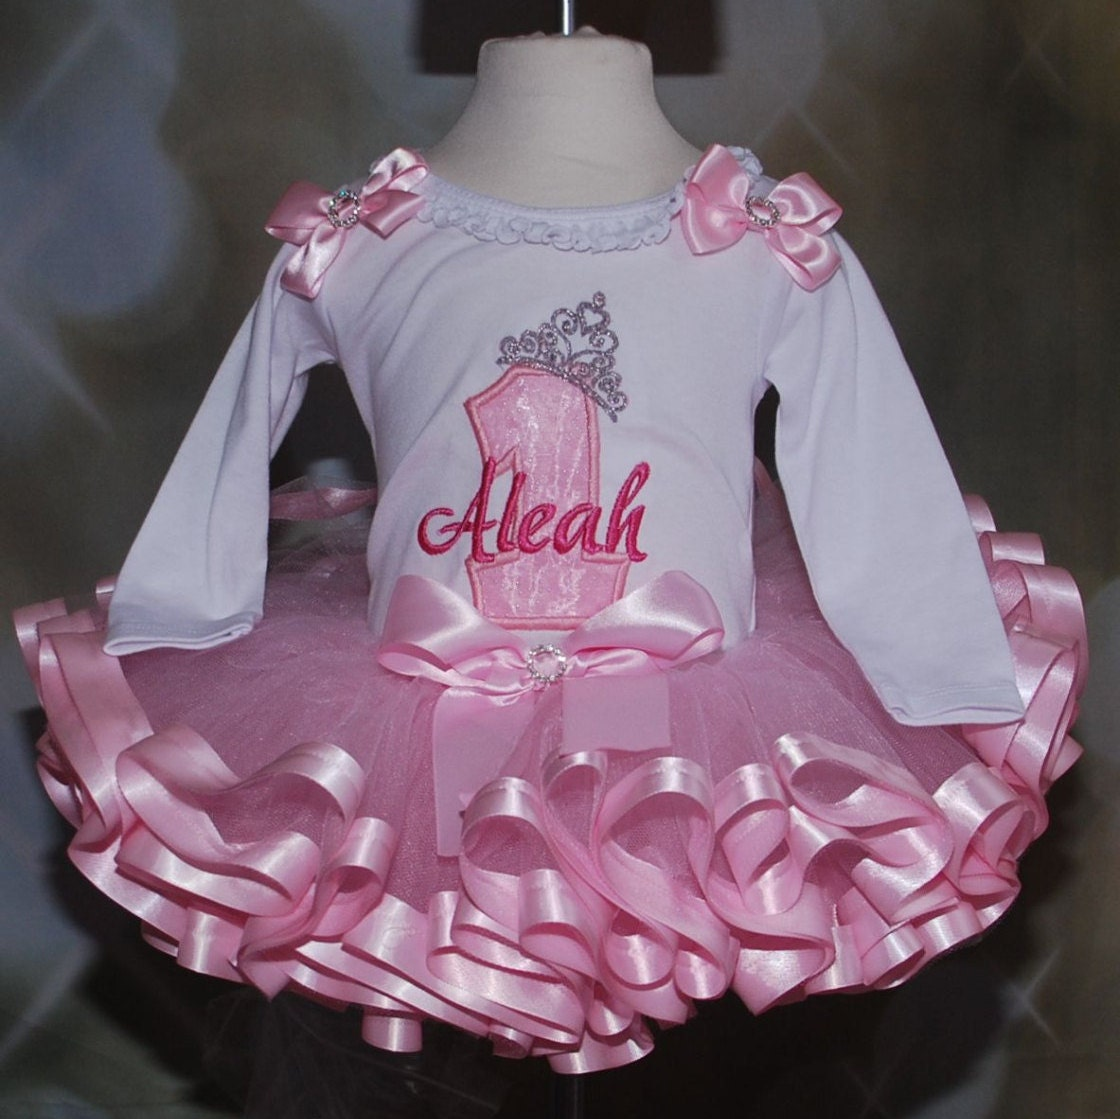 1st Birthday Princess  Tutu Outfit number 1 with tiara  ribbon trim tutu set, 1st birthday girl outfit with personalized onesie, tutu dress